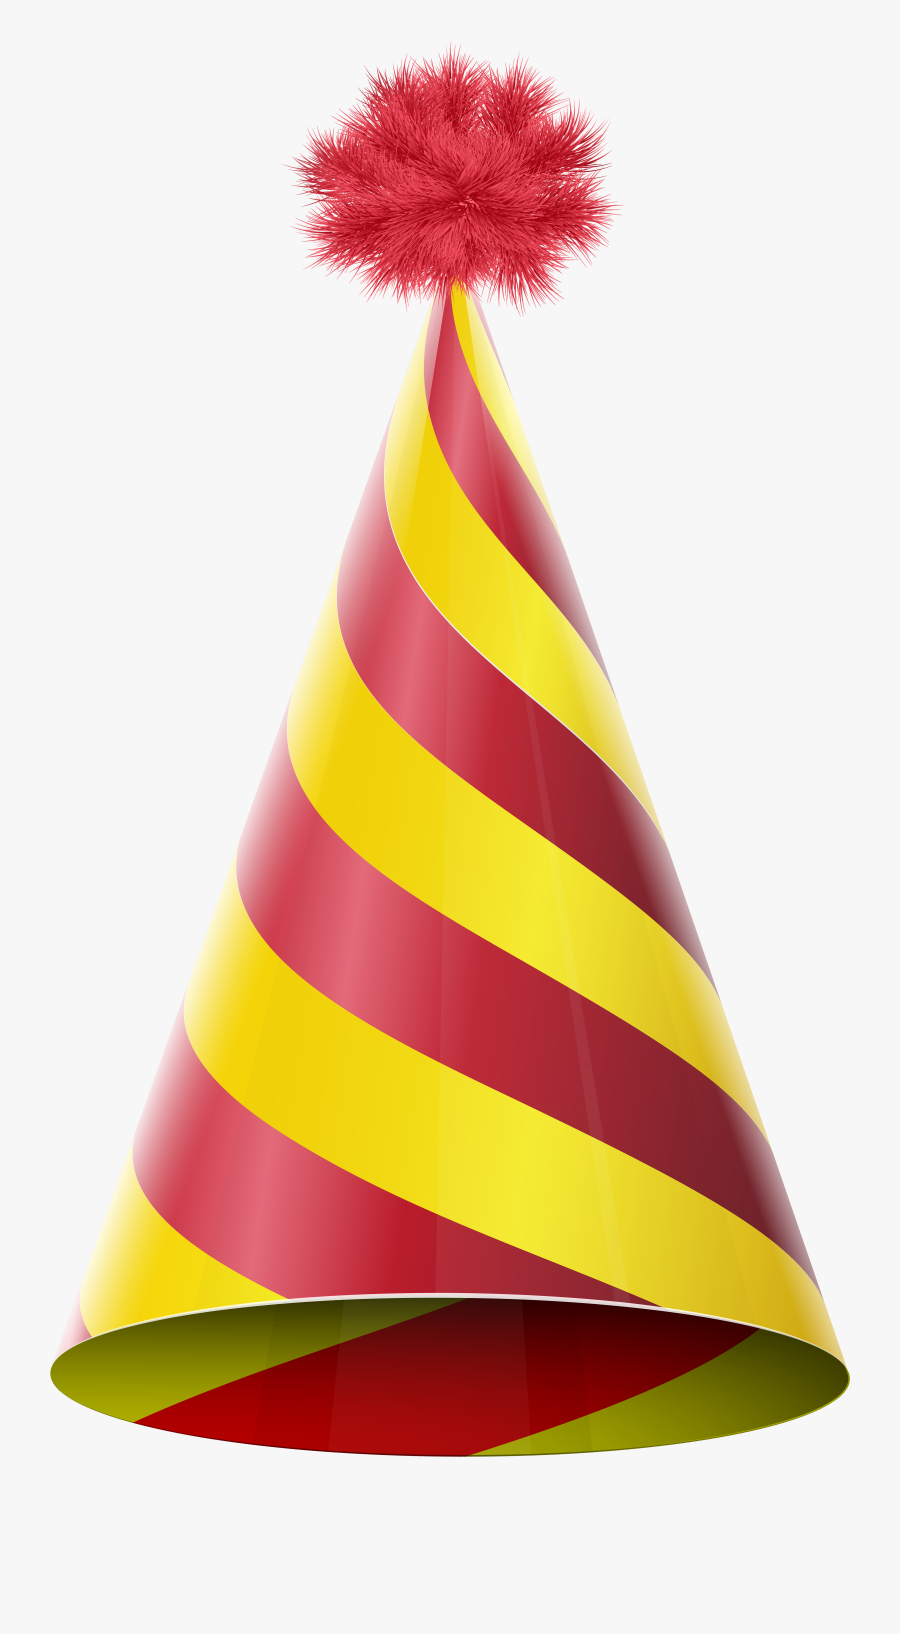 Party Hat Red Yellow Transparent Png Clip Art Image - Red And Yellow Party Hat, Transparent Clipart